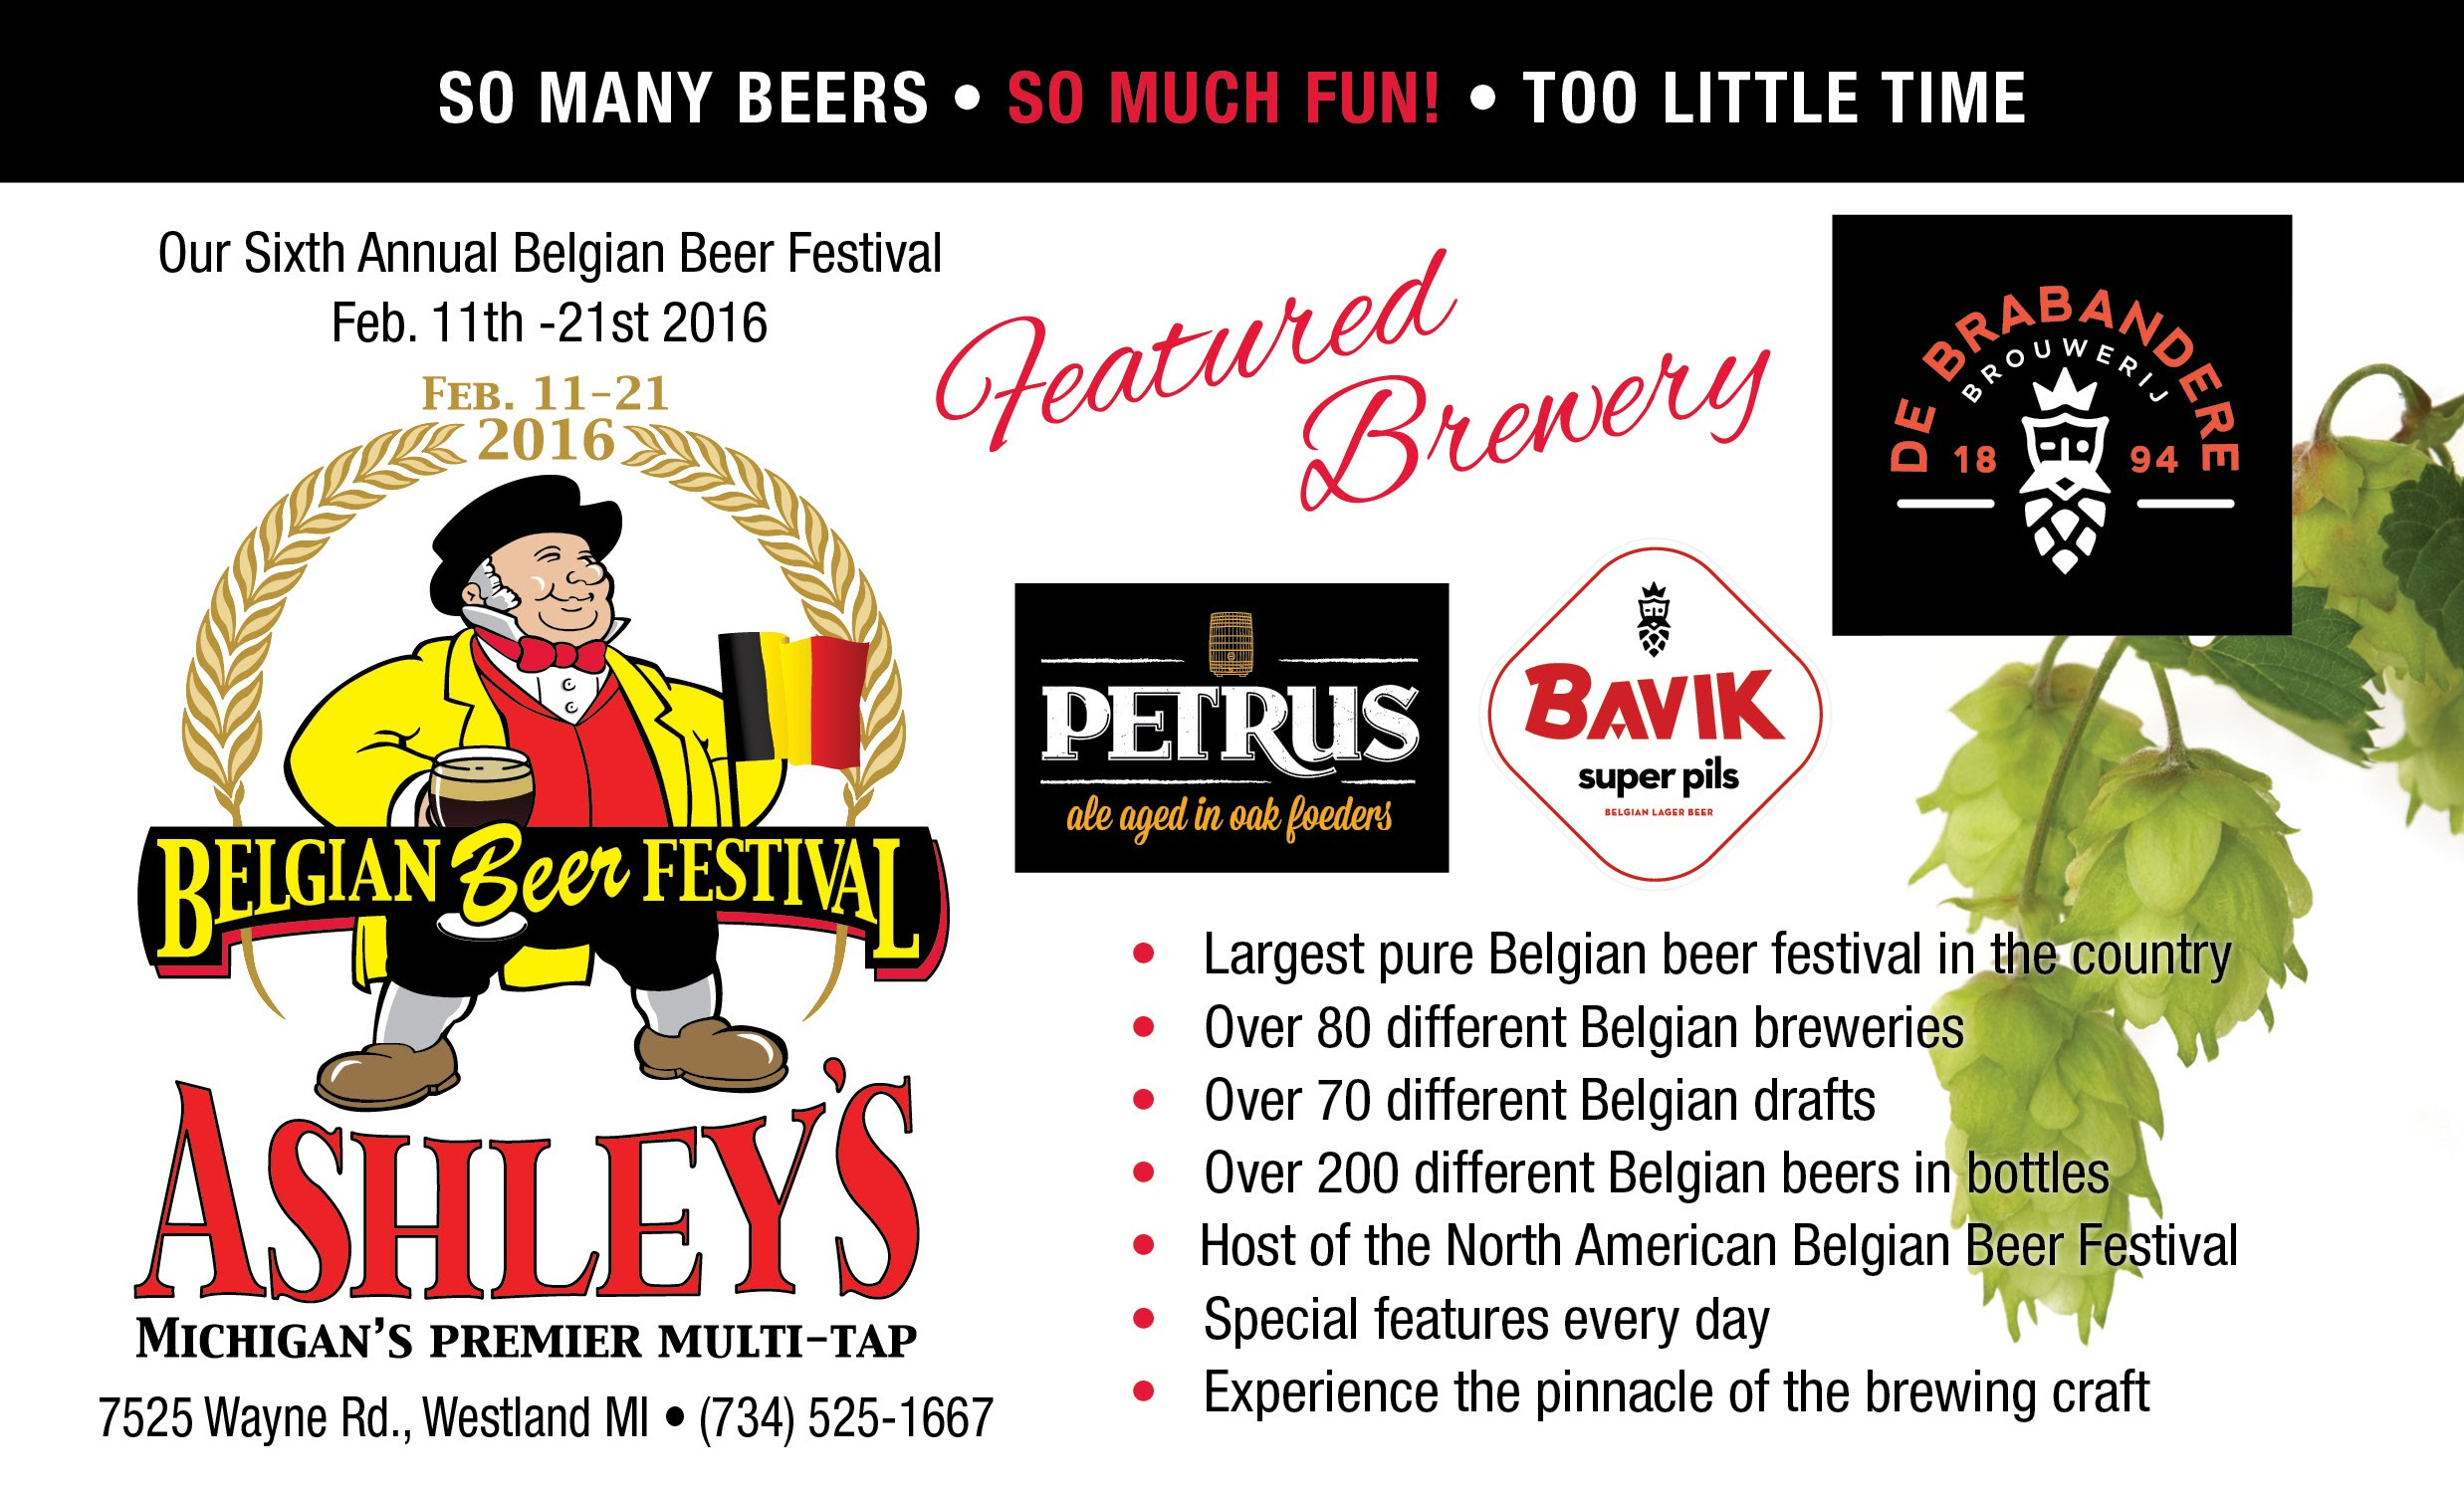 Ashley's Belgian Beer Festival 2016